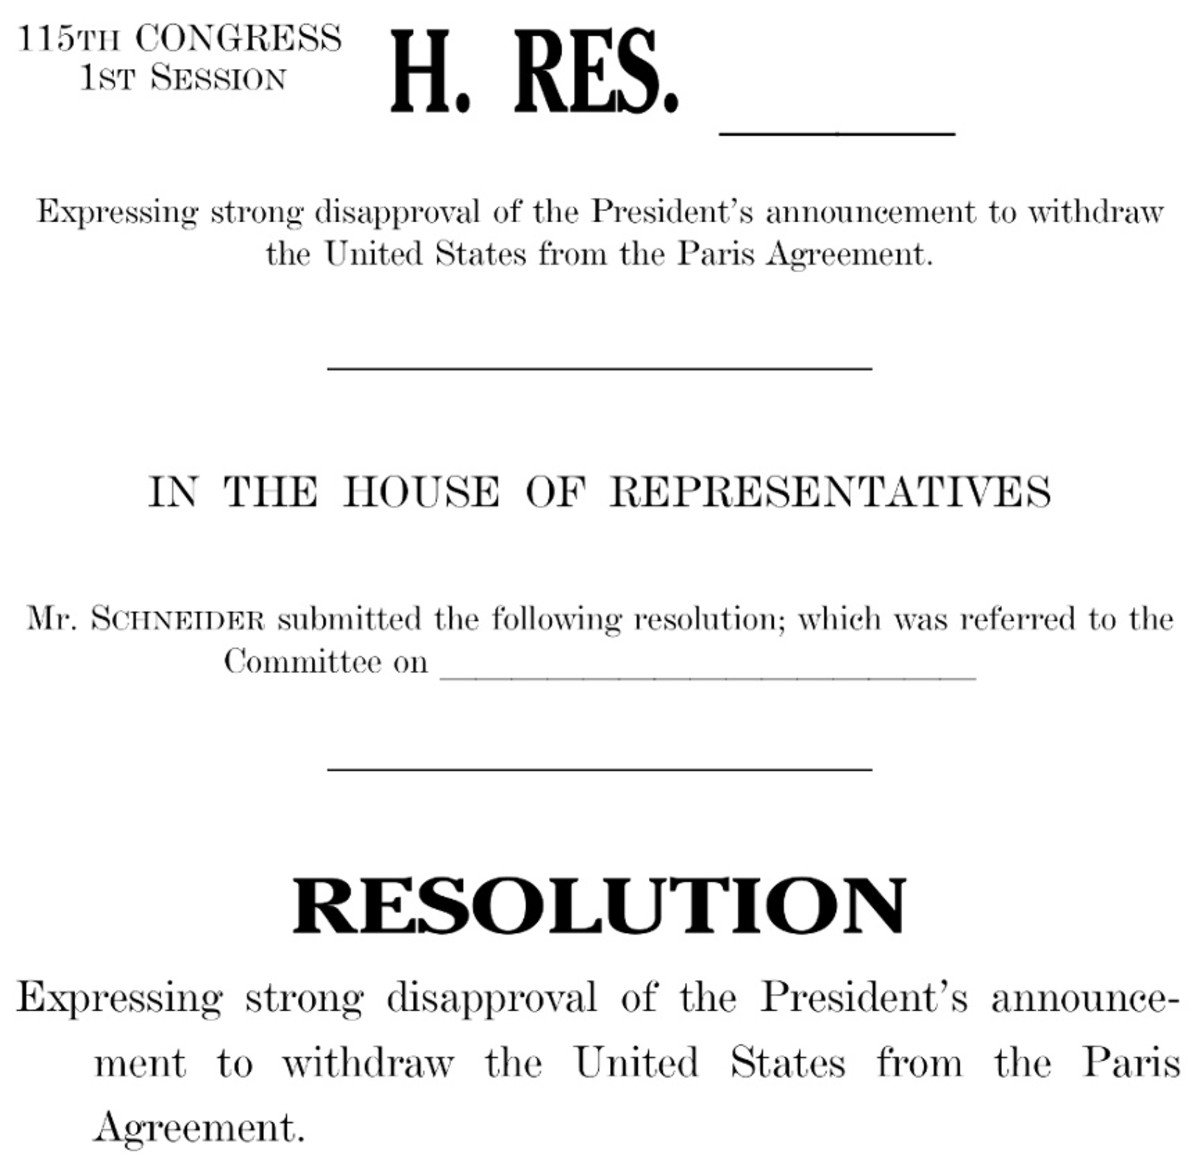 Congressional Resolution Objecting to Trump's Paris Withdrawal Is Grossly Misguided